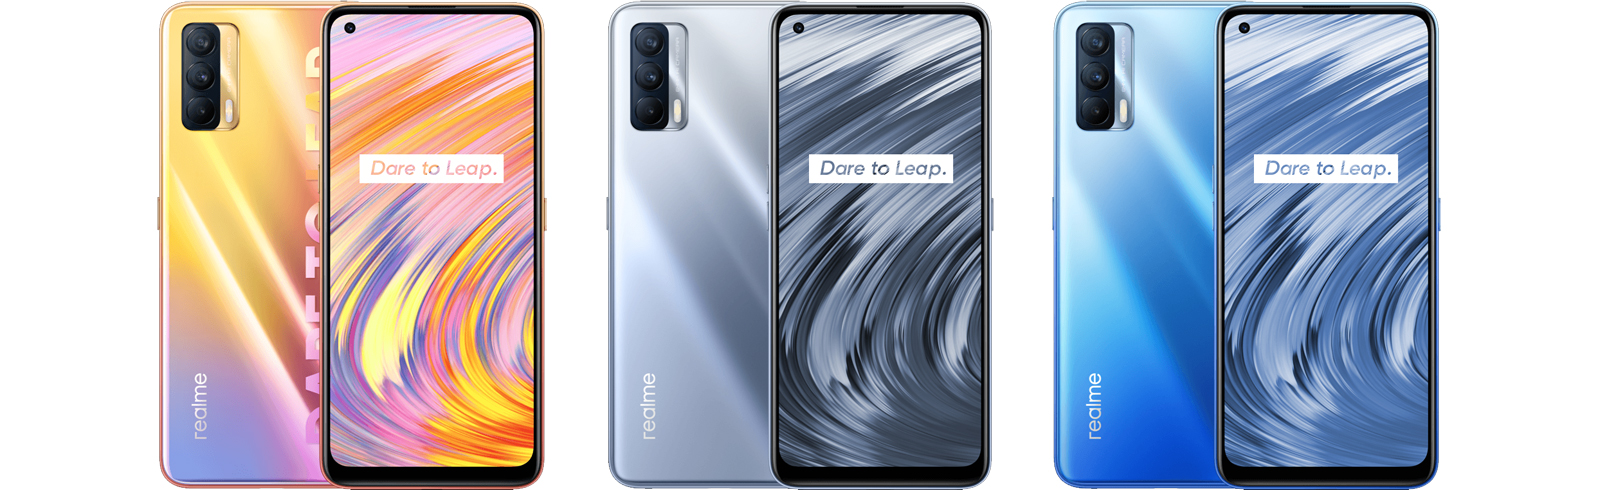 """Realme V15 5G is announced with a 6.4"""" AMOLED screen and Dimensity 800U chipset"""